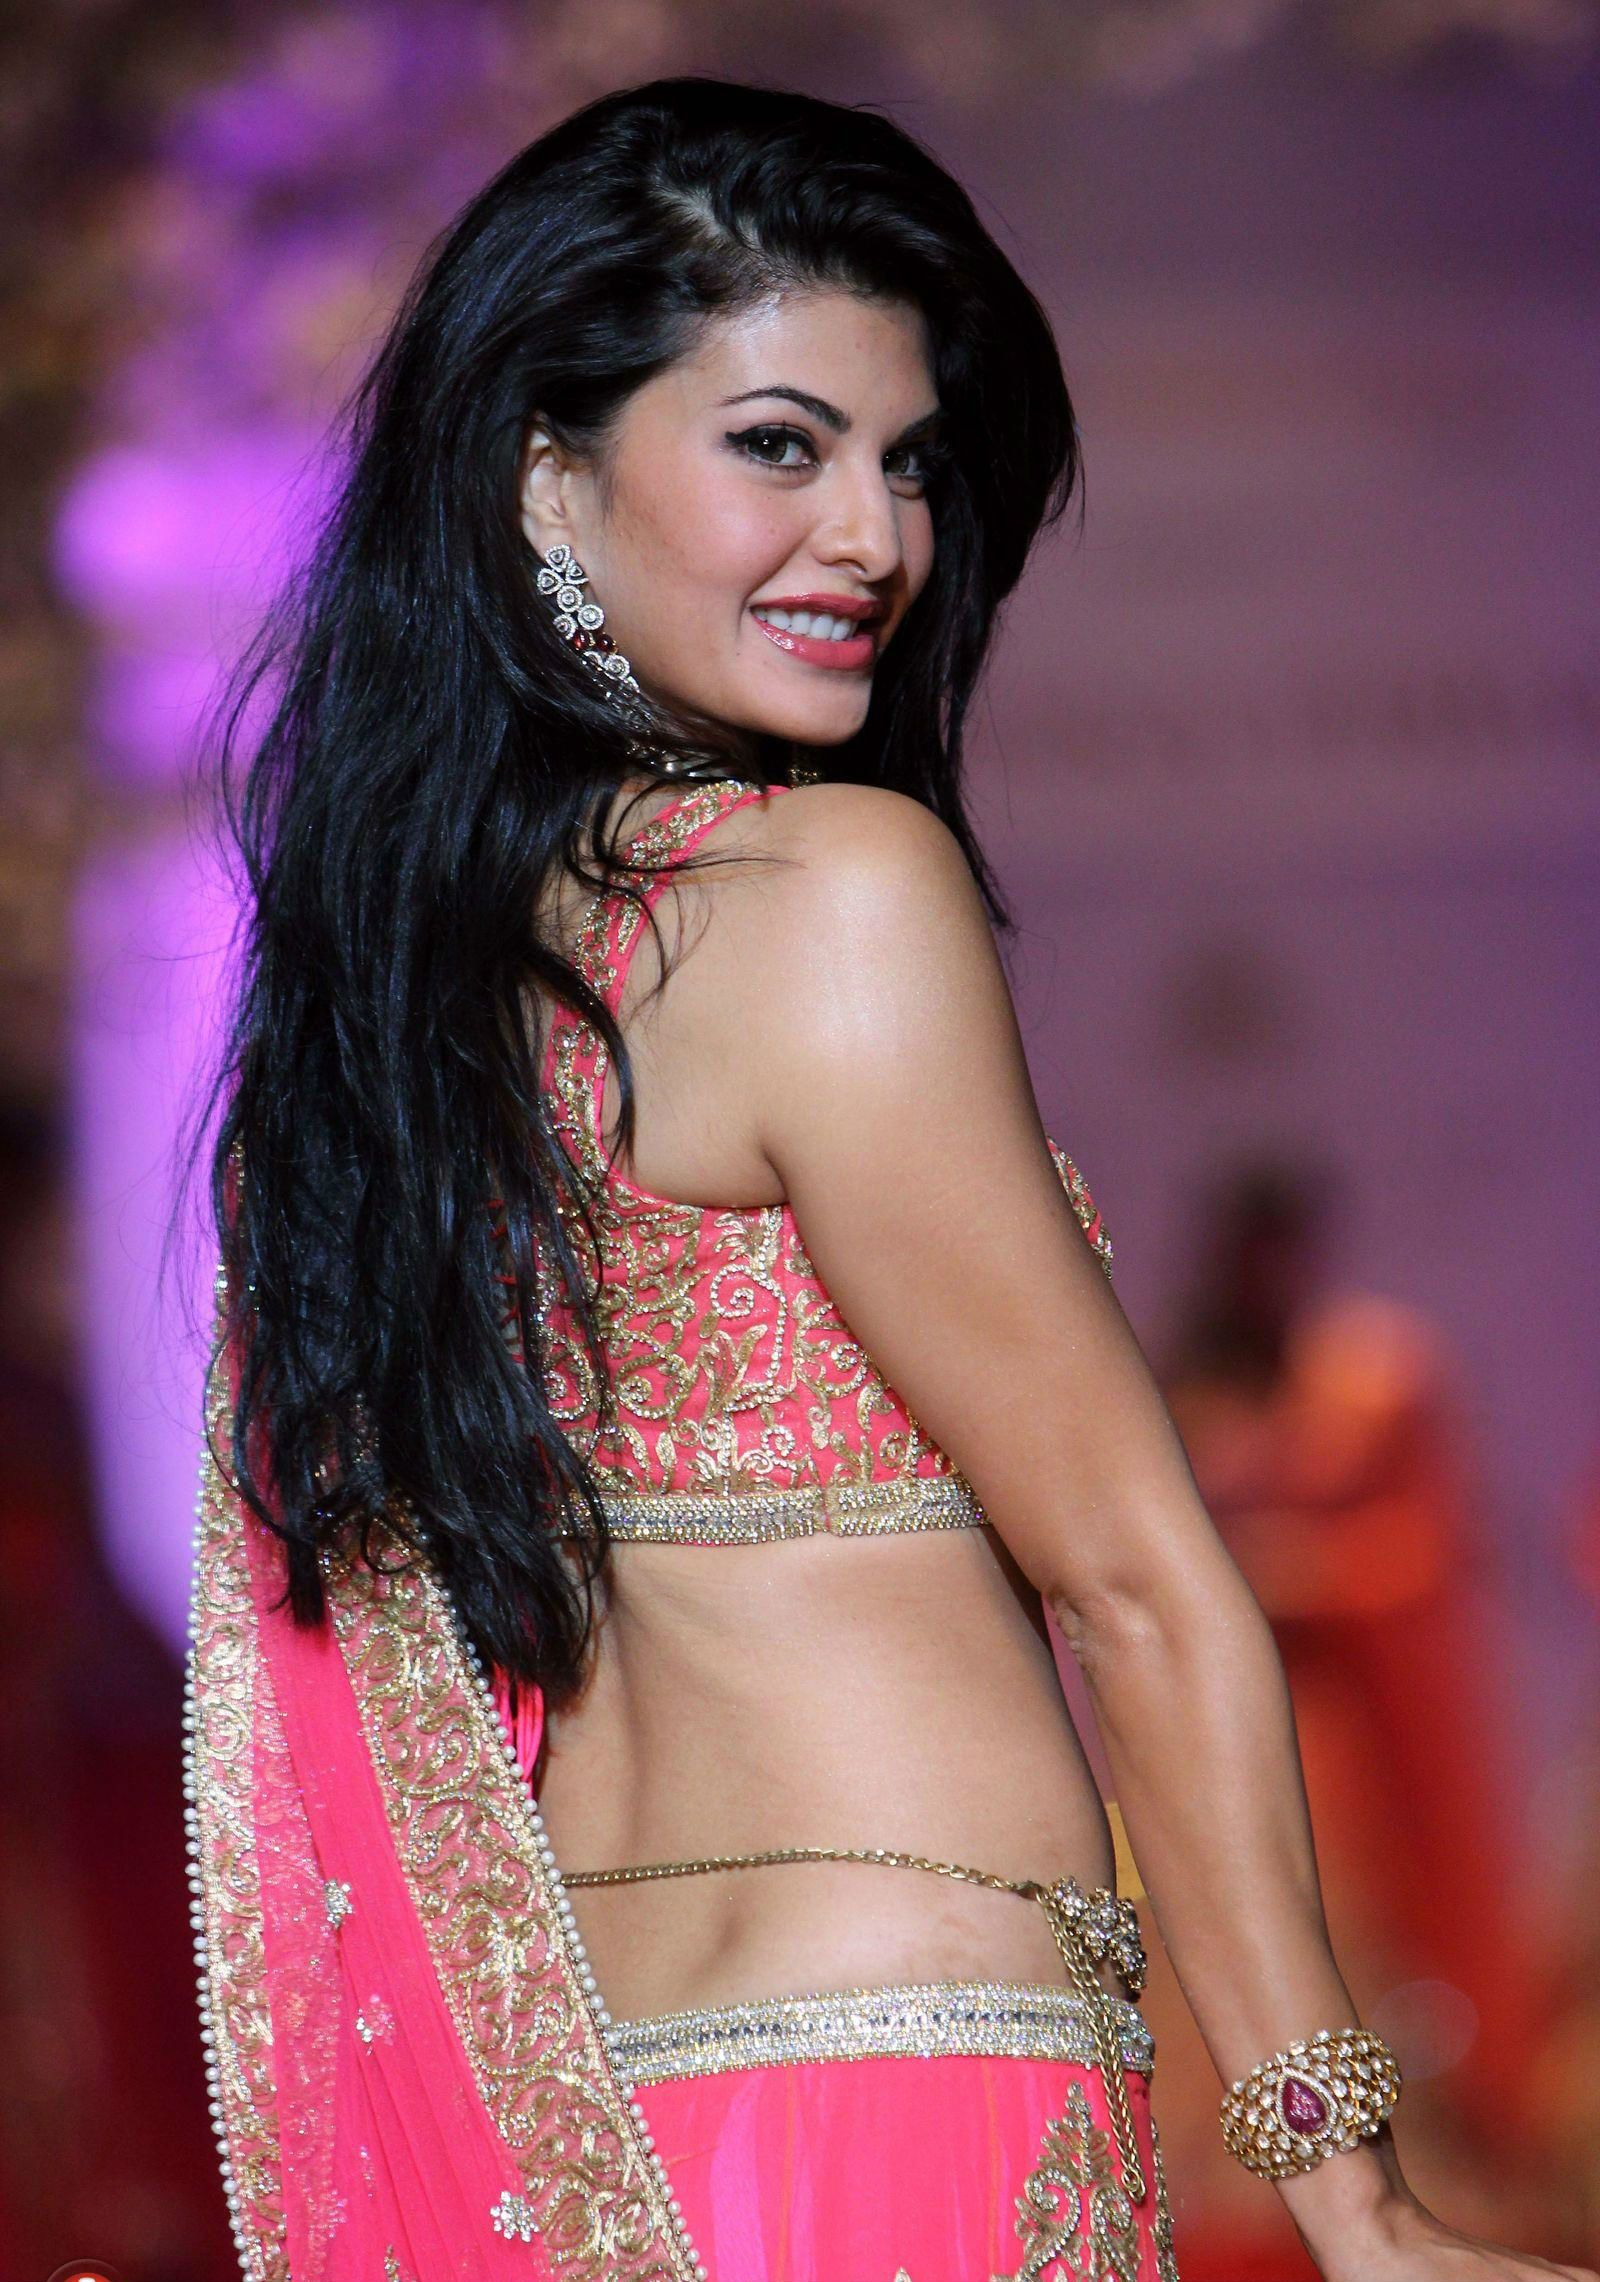 Jacqueline Fernandez Hottest Picture, Bollywood Actress